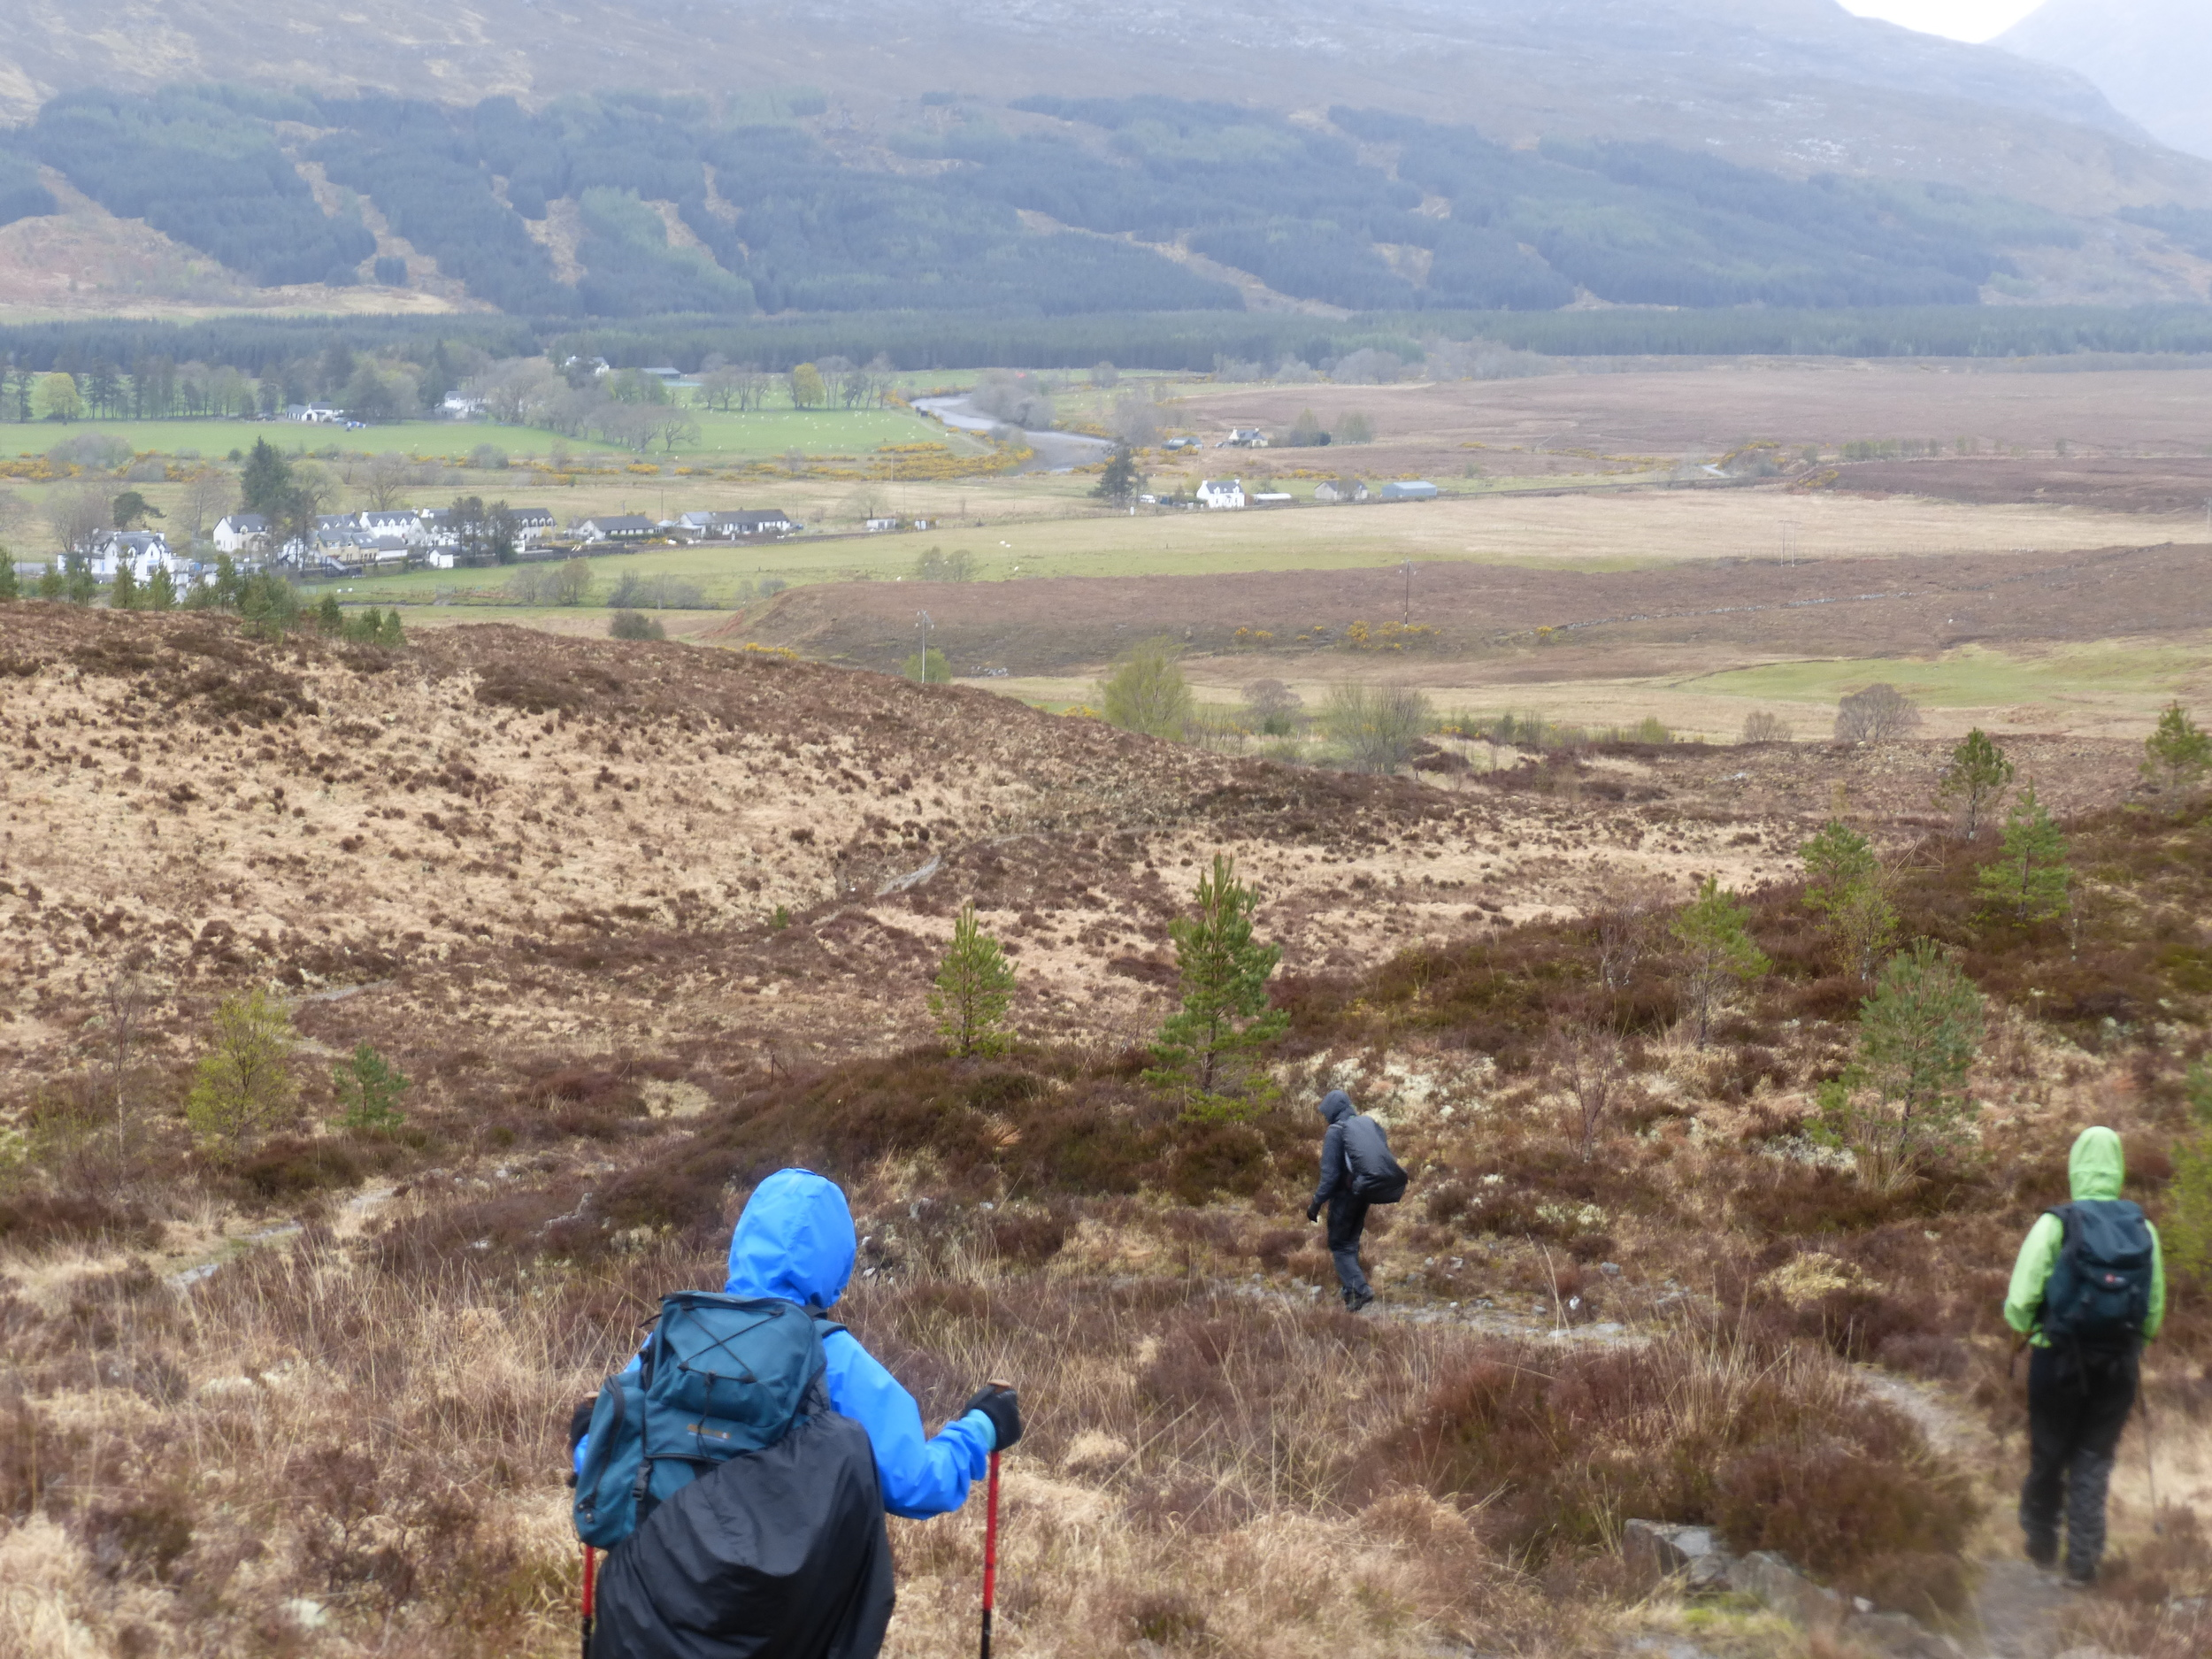 Nearly there.  The team edges closer to Strathcarron in the distance